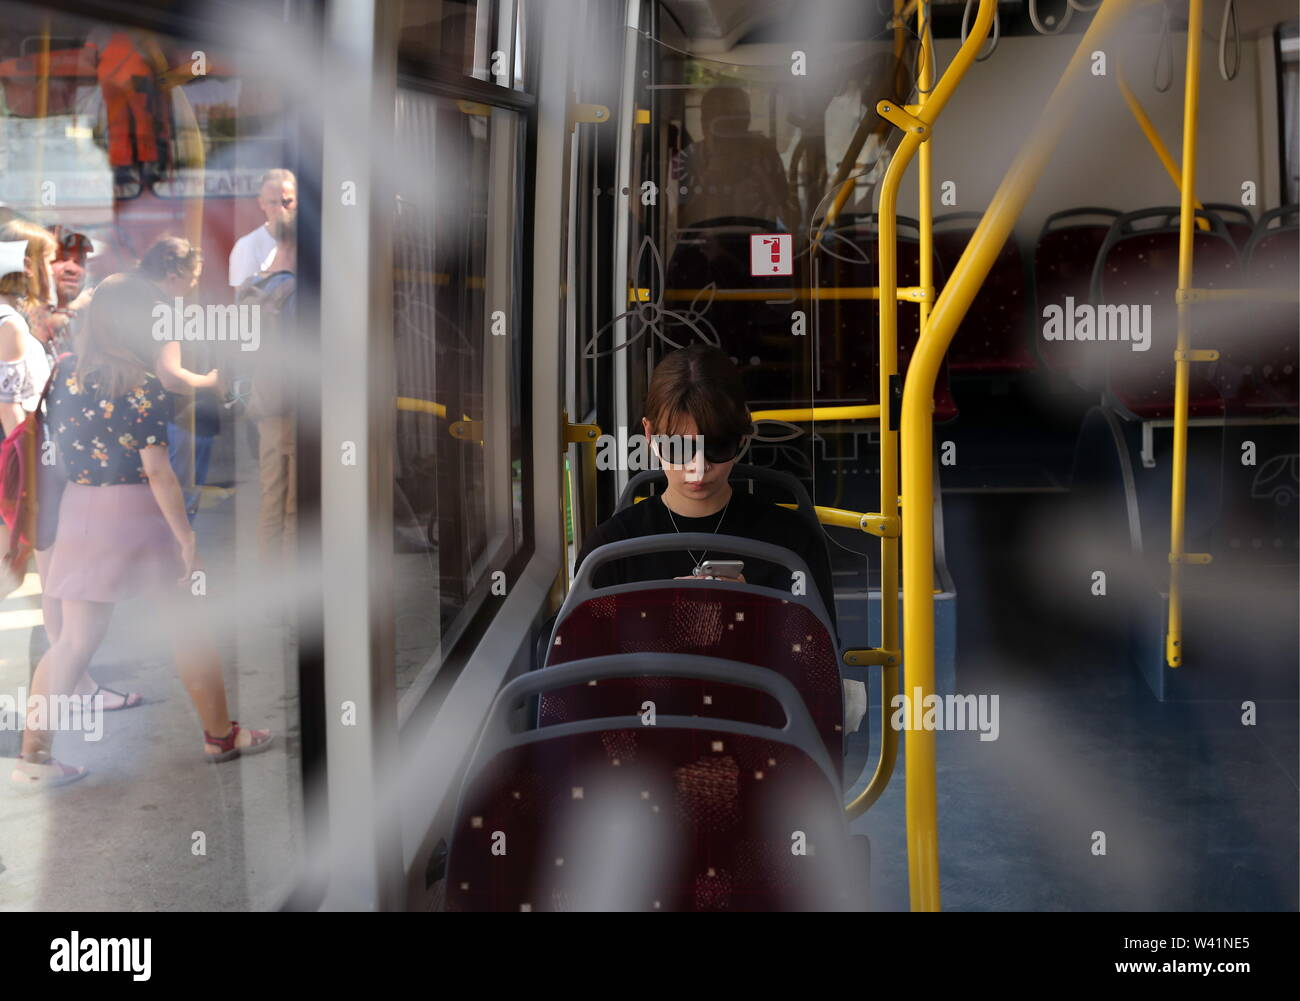 Yekaterinburg, Russia. 19th July, 2019. YEKATERINBURG, RUSSIA - JULY 19, 2019: A girl in a Belkommunmash electric bus during a test run along Trolleybus Route 1, from Shchorsa Street to a railway station. The bus, manufactured by Belarus' Belkommunmash Company, was displayed at the 2019 Innoprom exhibition. Donat Sorokin/TASS Credit: ITAR-TASS News Agency/Alamy Live News - Stock Image